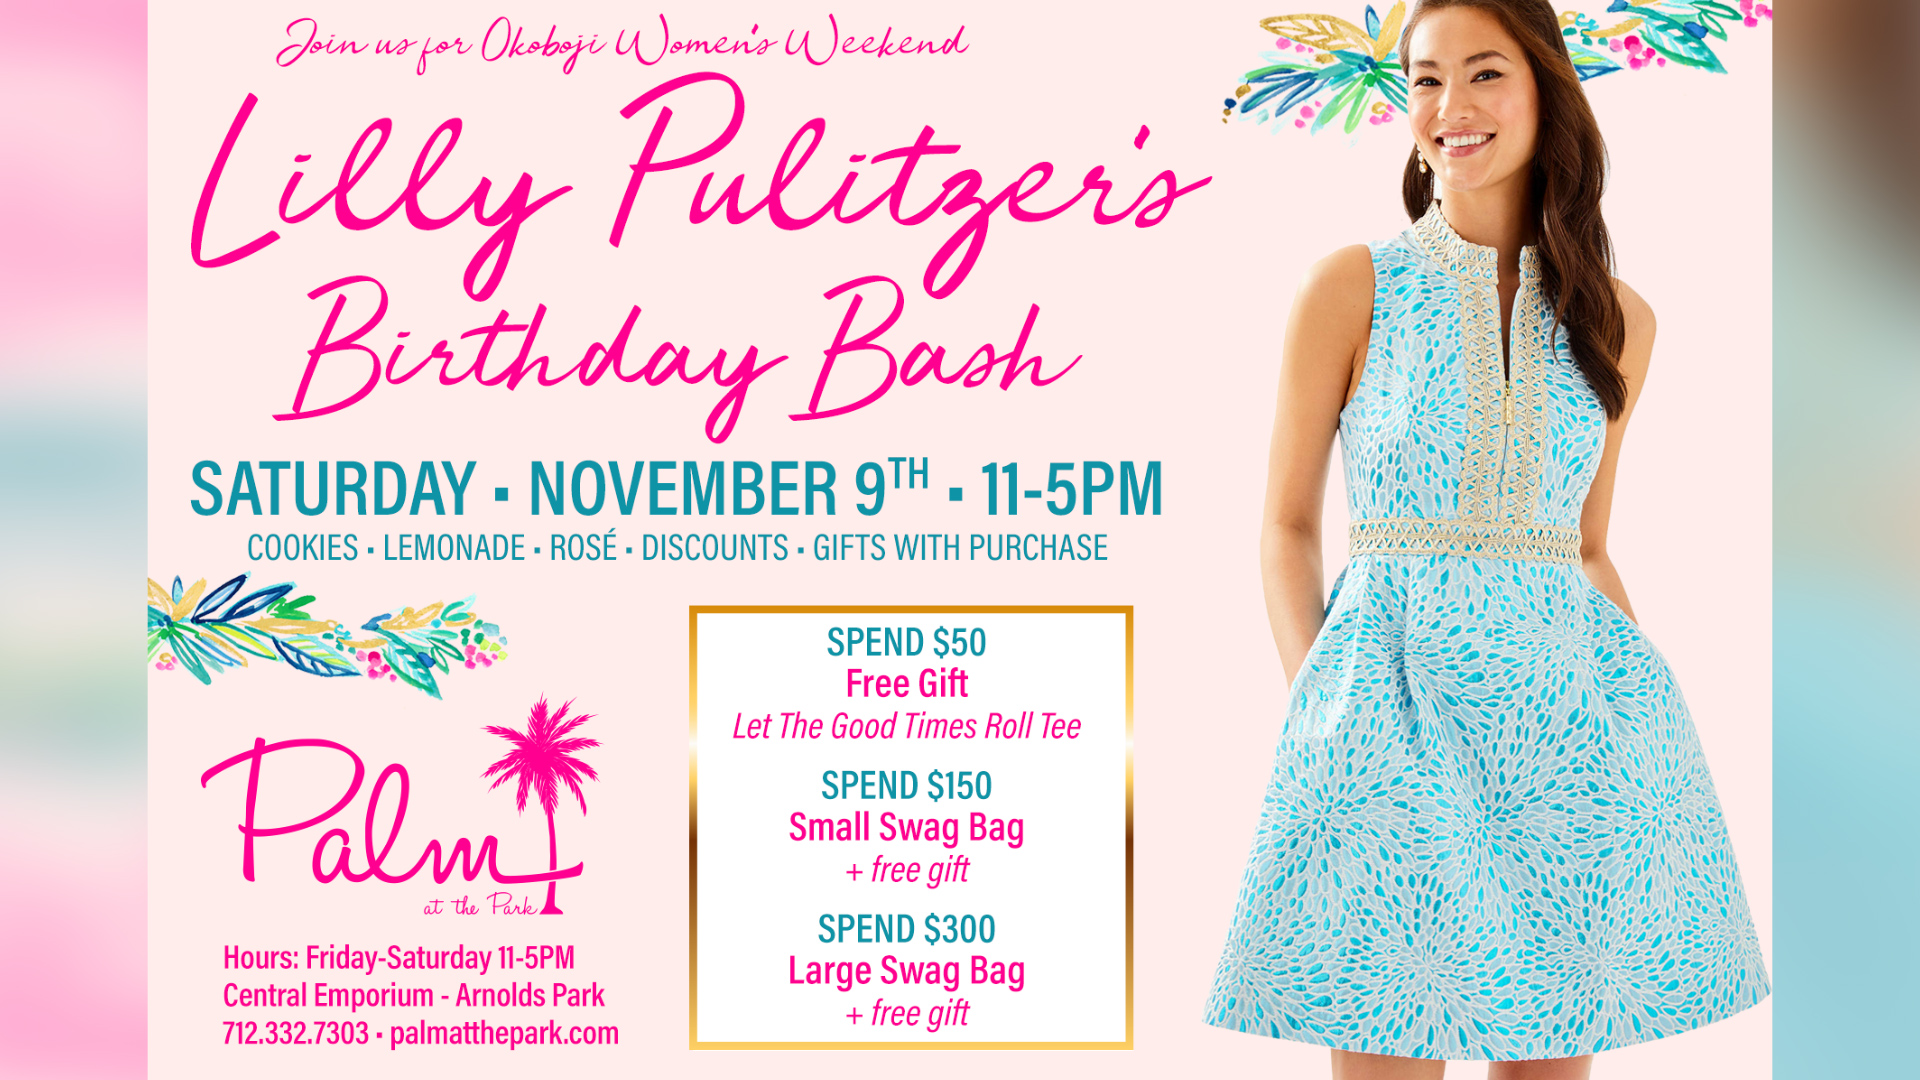 Lilly Pulitzer's Birthday Bash at Palm at the Park